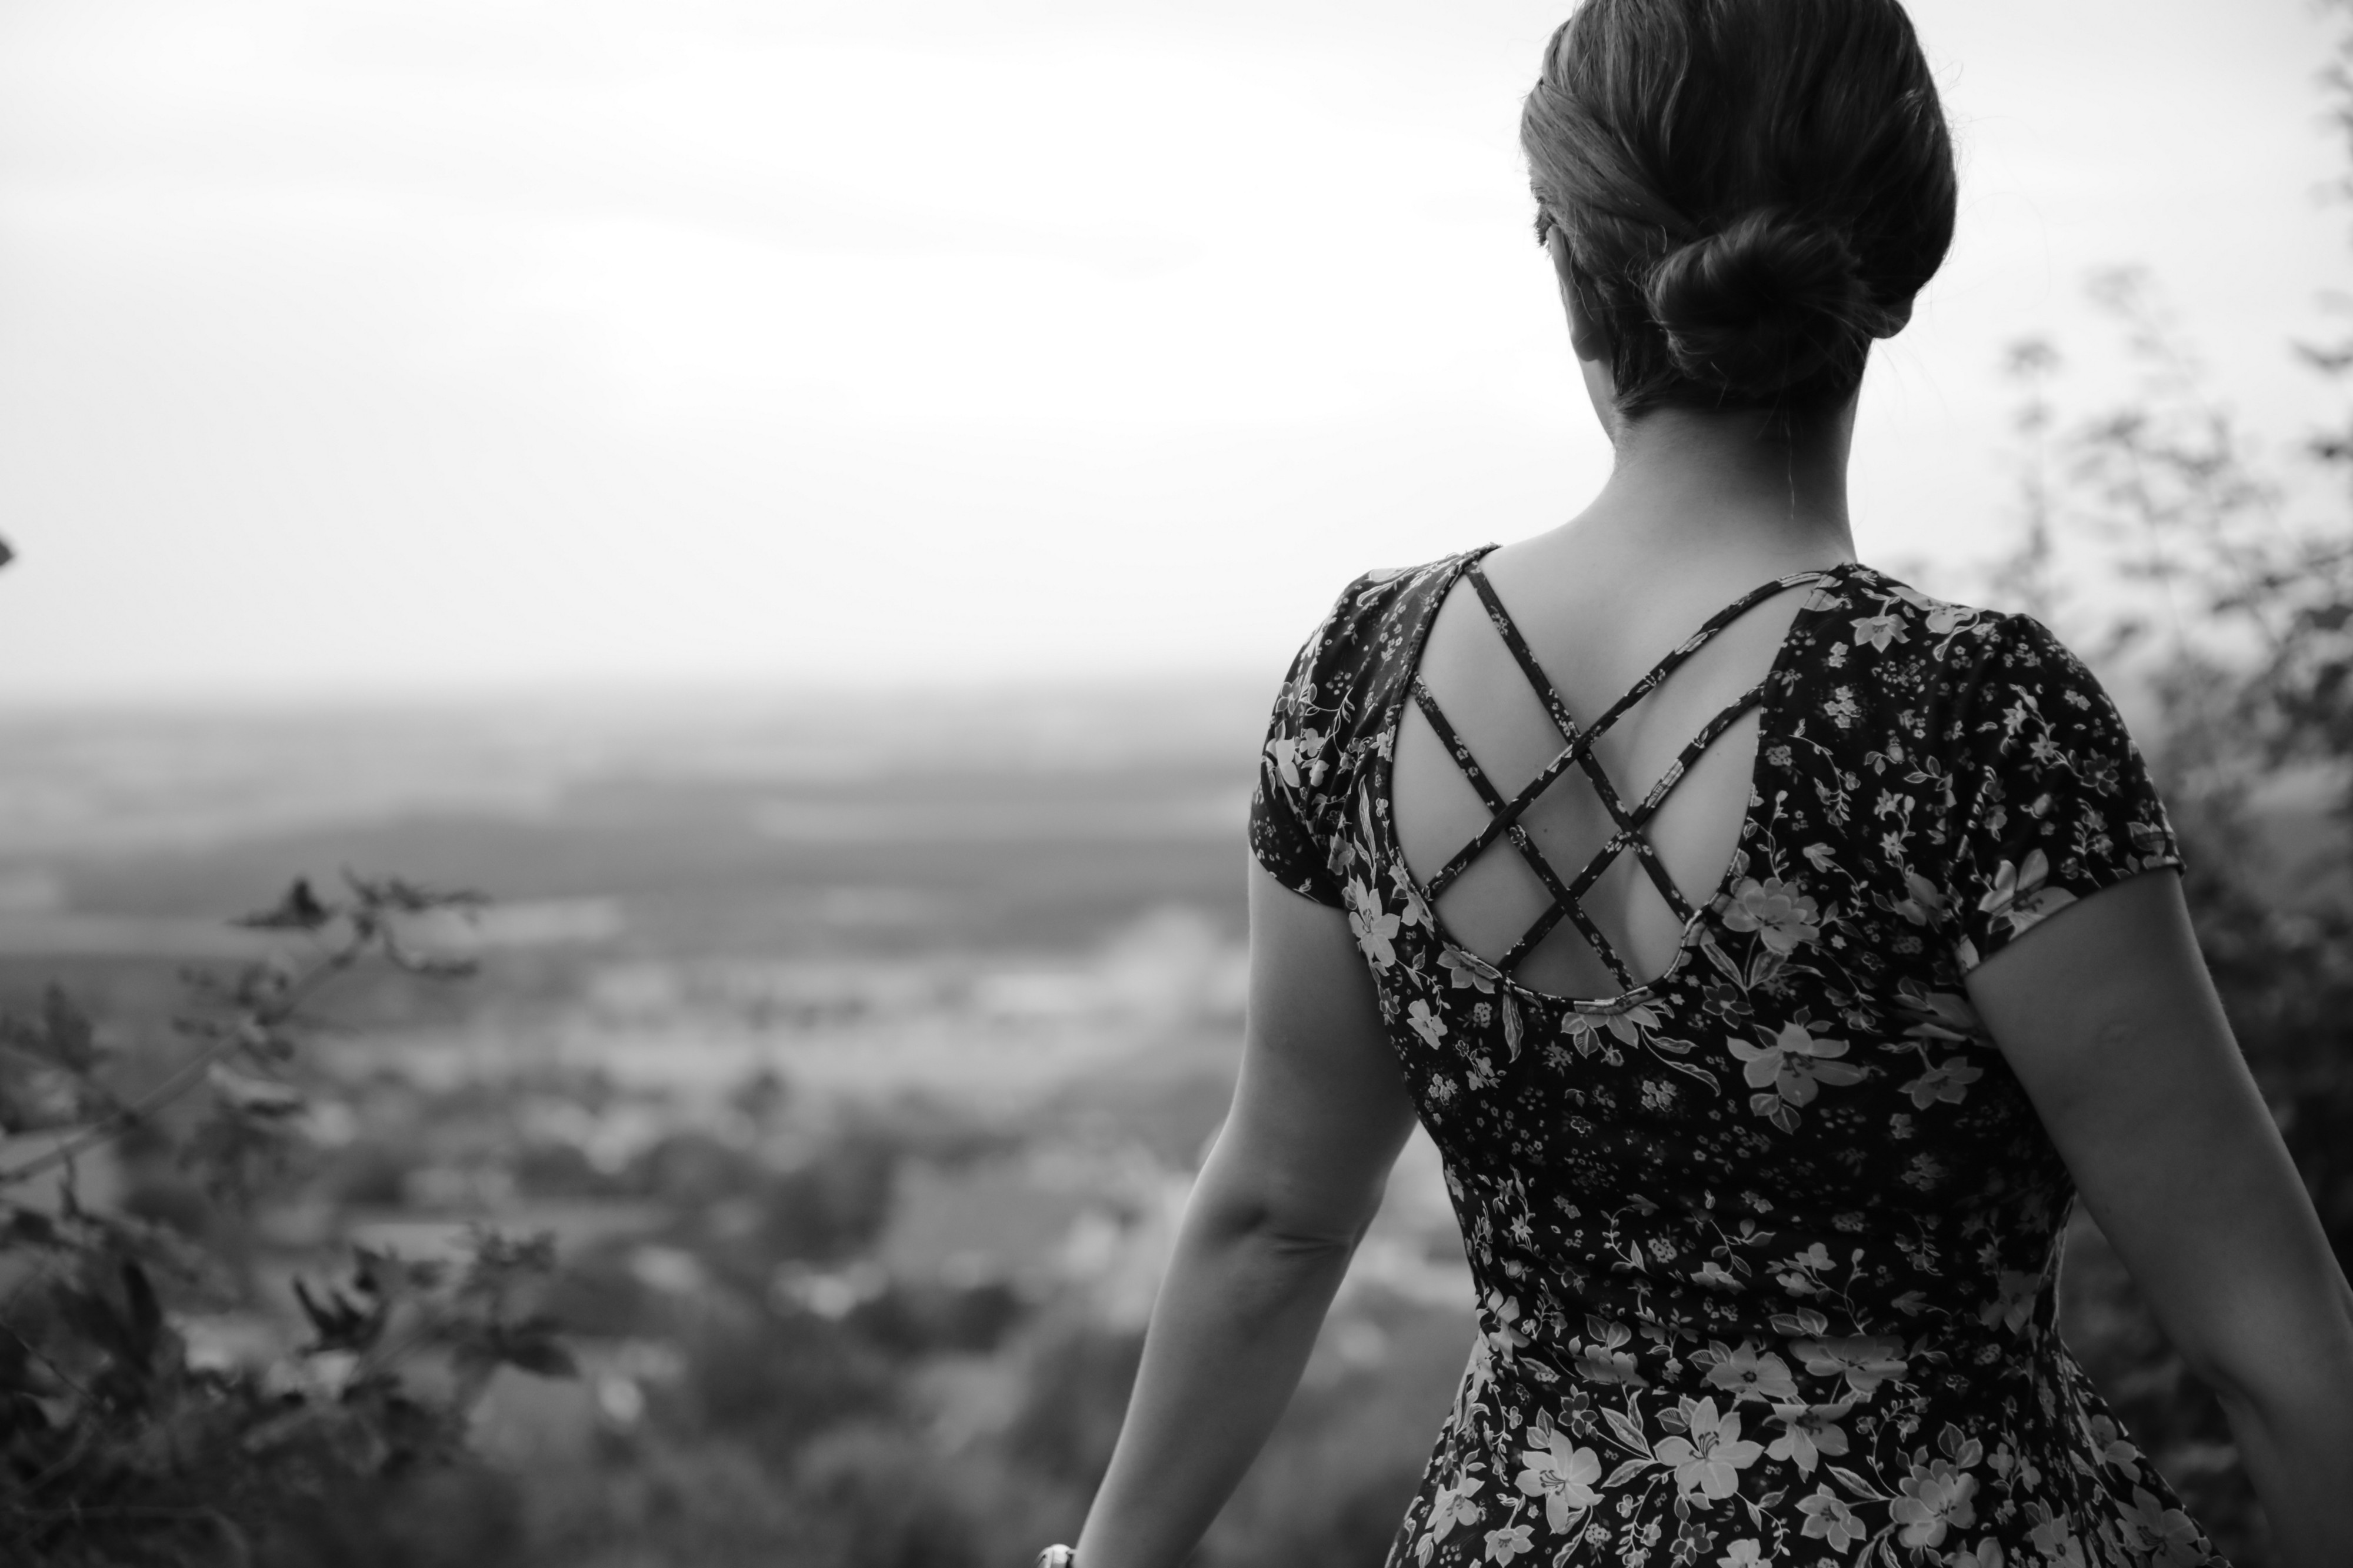 Back view of a woman wearing a dress and looking at the countryside